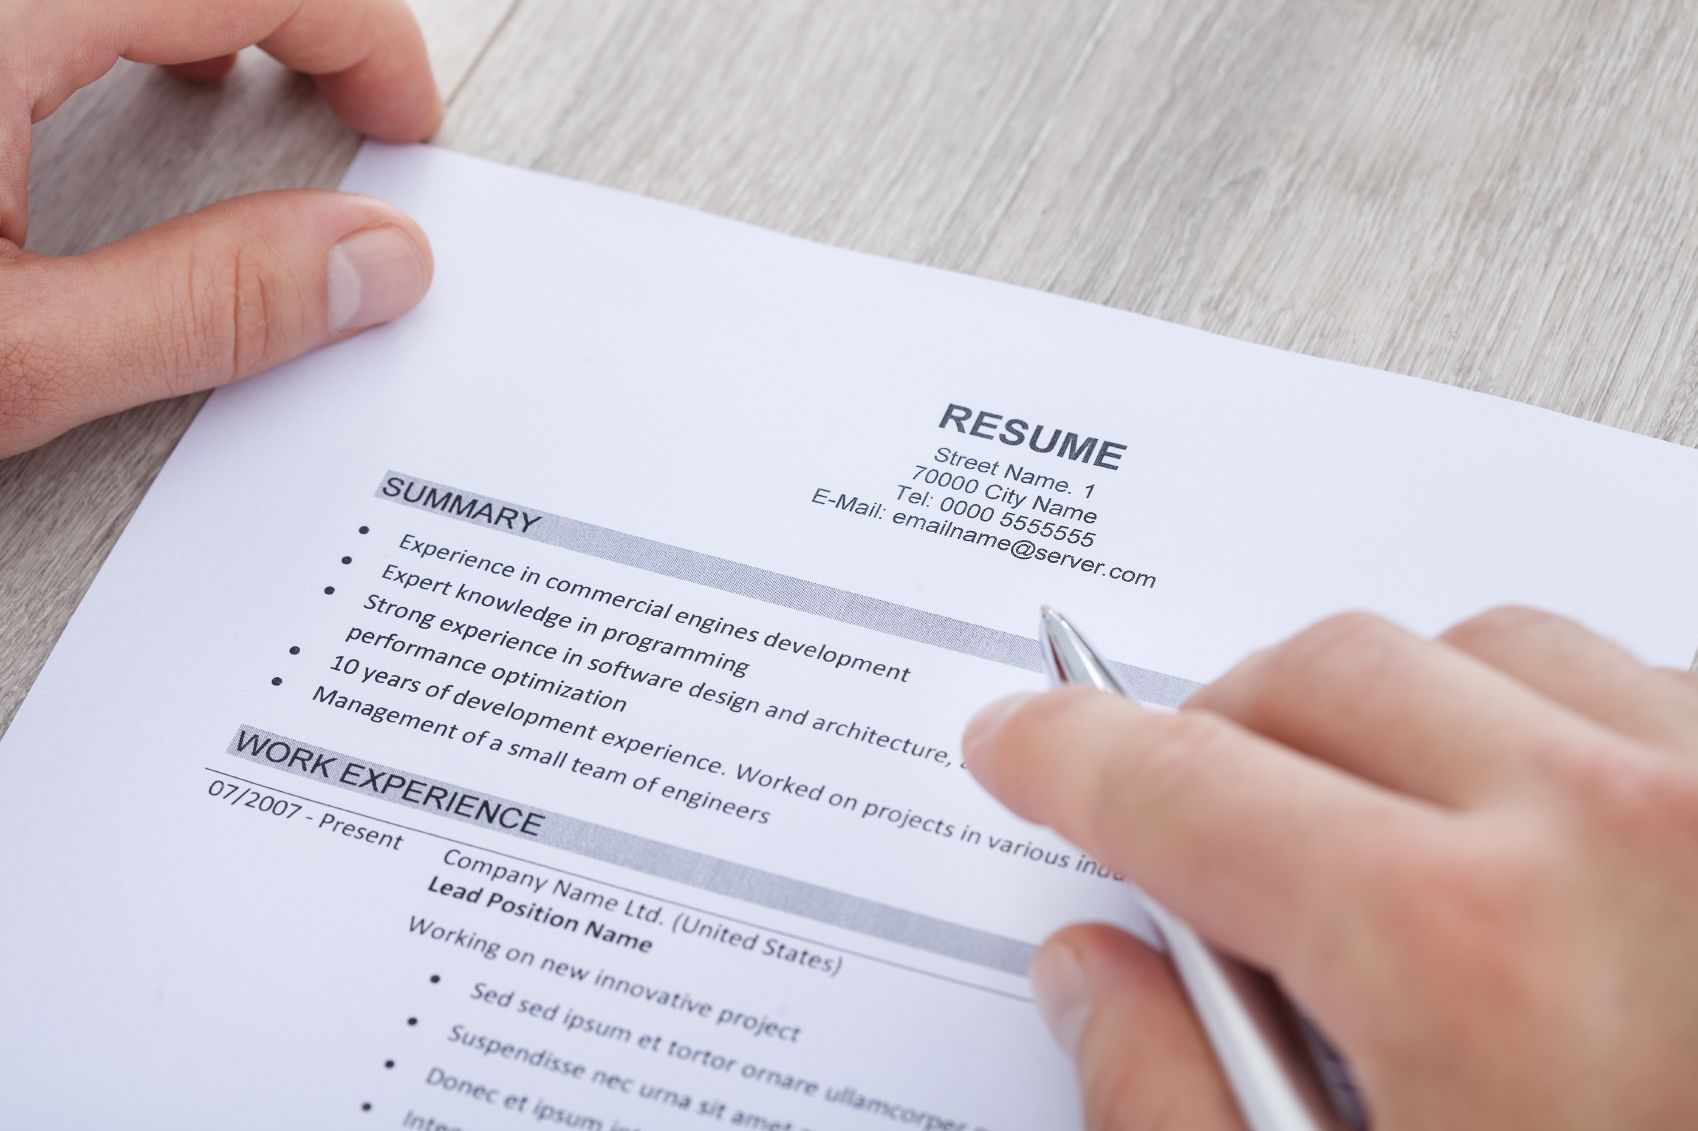 resumes profile vs objective